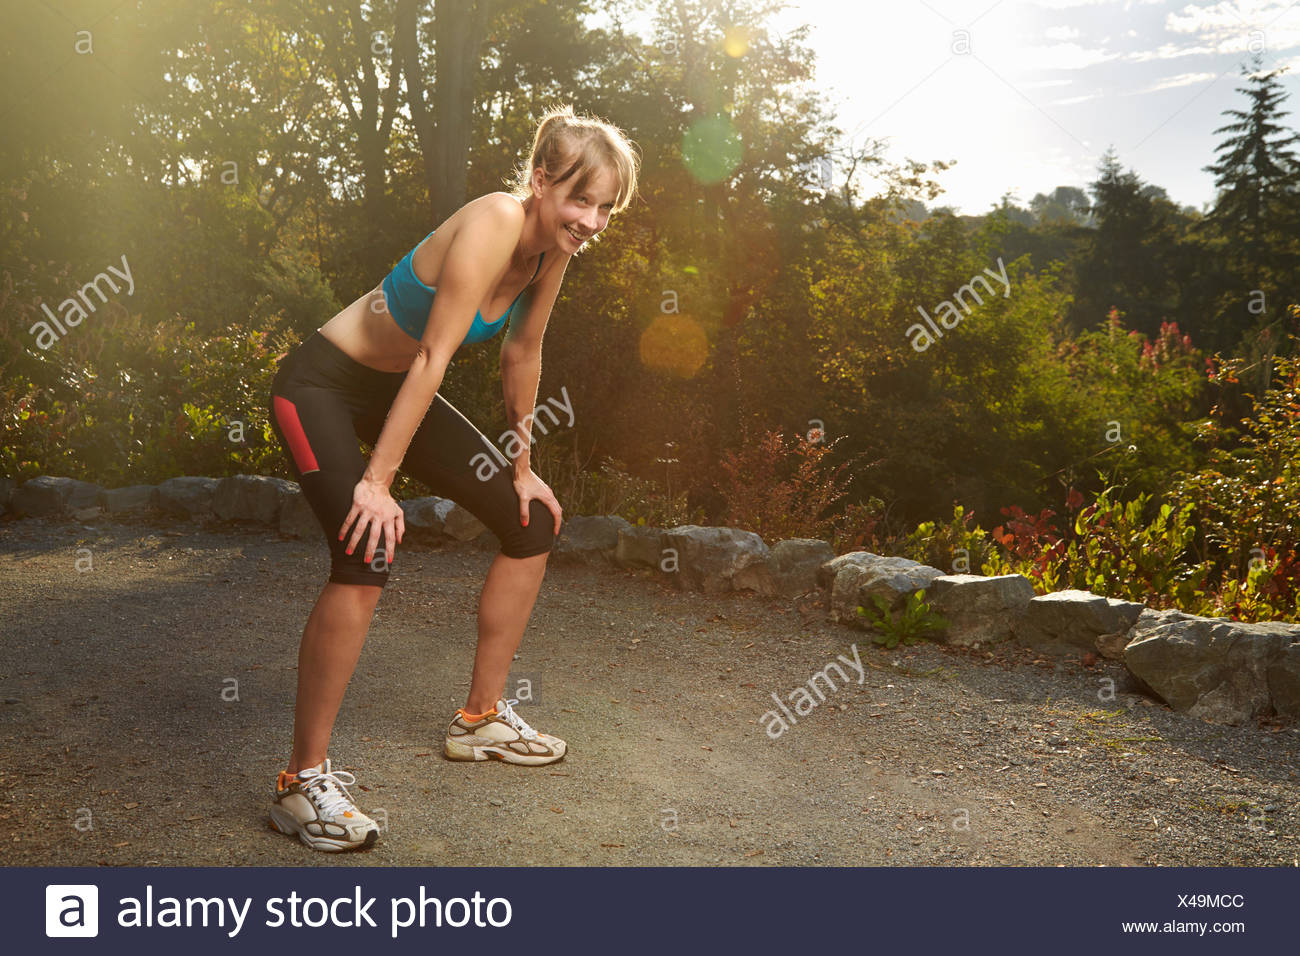 Exhausted female runner taking a break in park - Stock Image